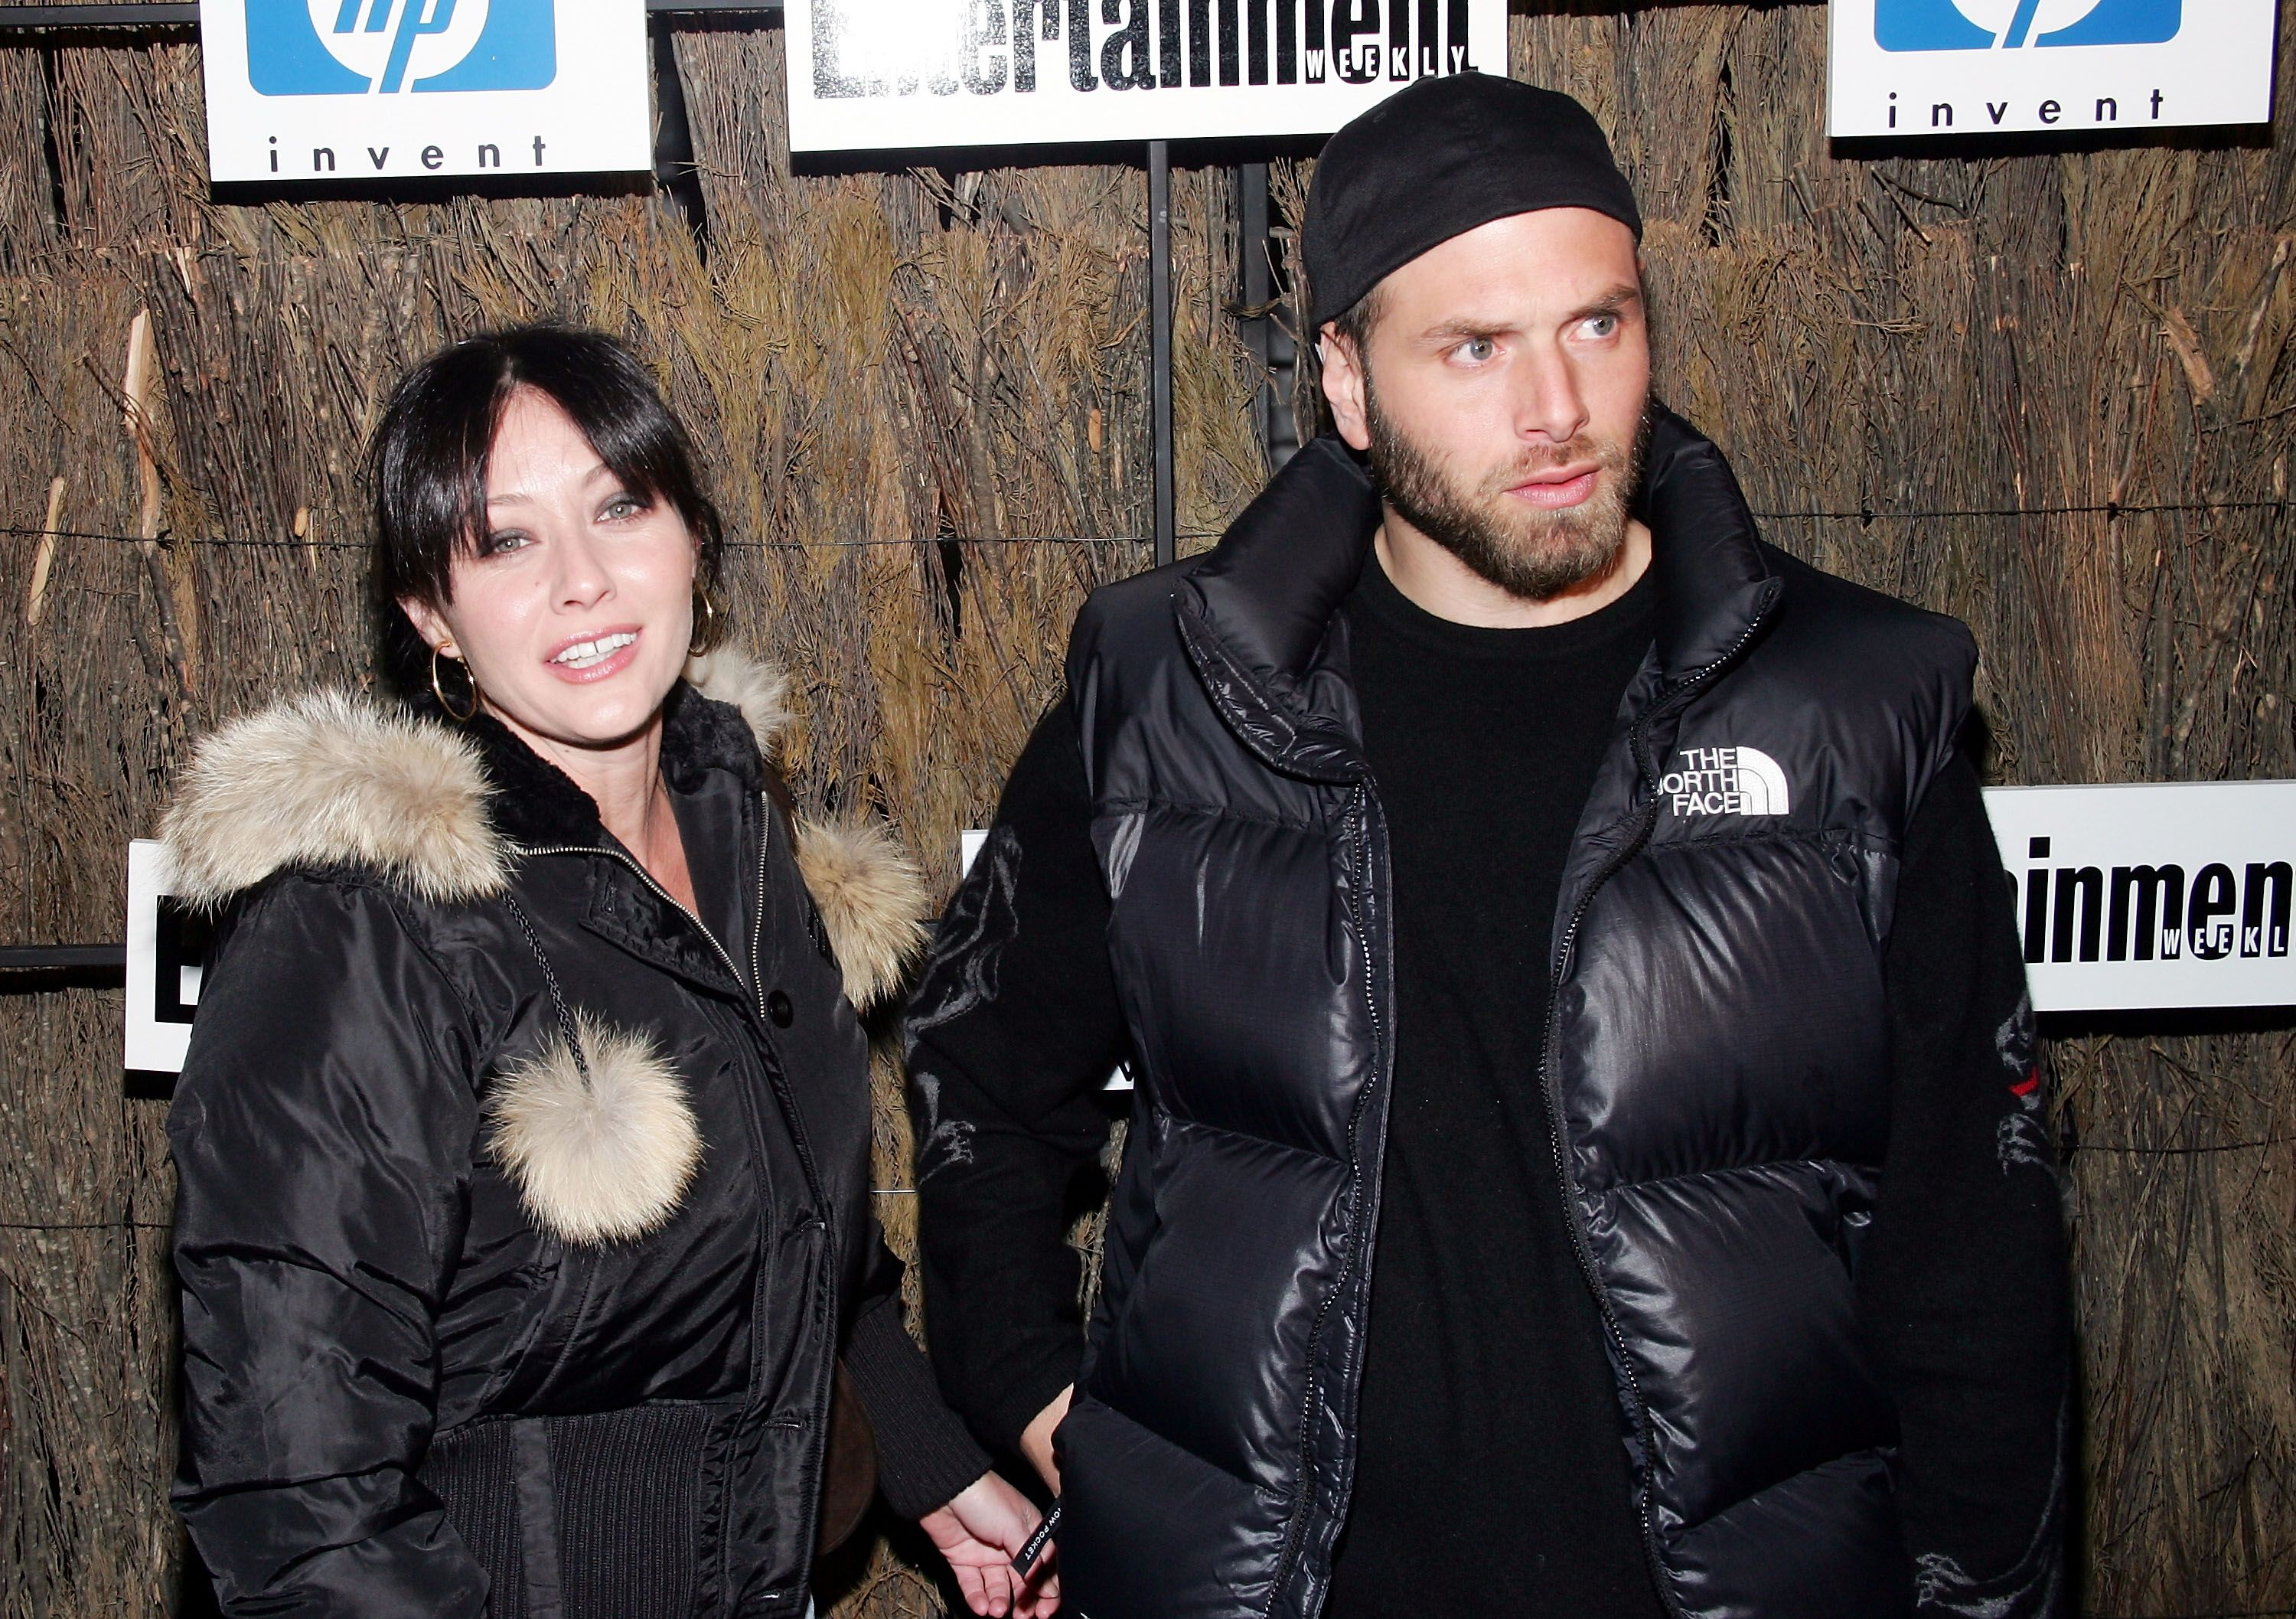 Shannen Doherty with Rick salmon at the Sundance Film Festival | Source: Getty Images